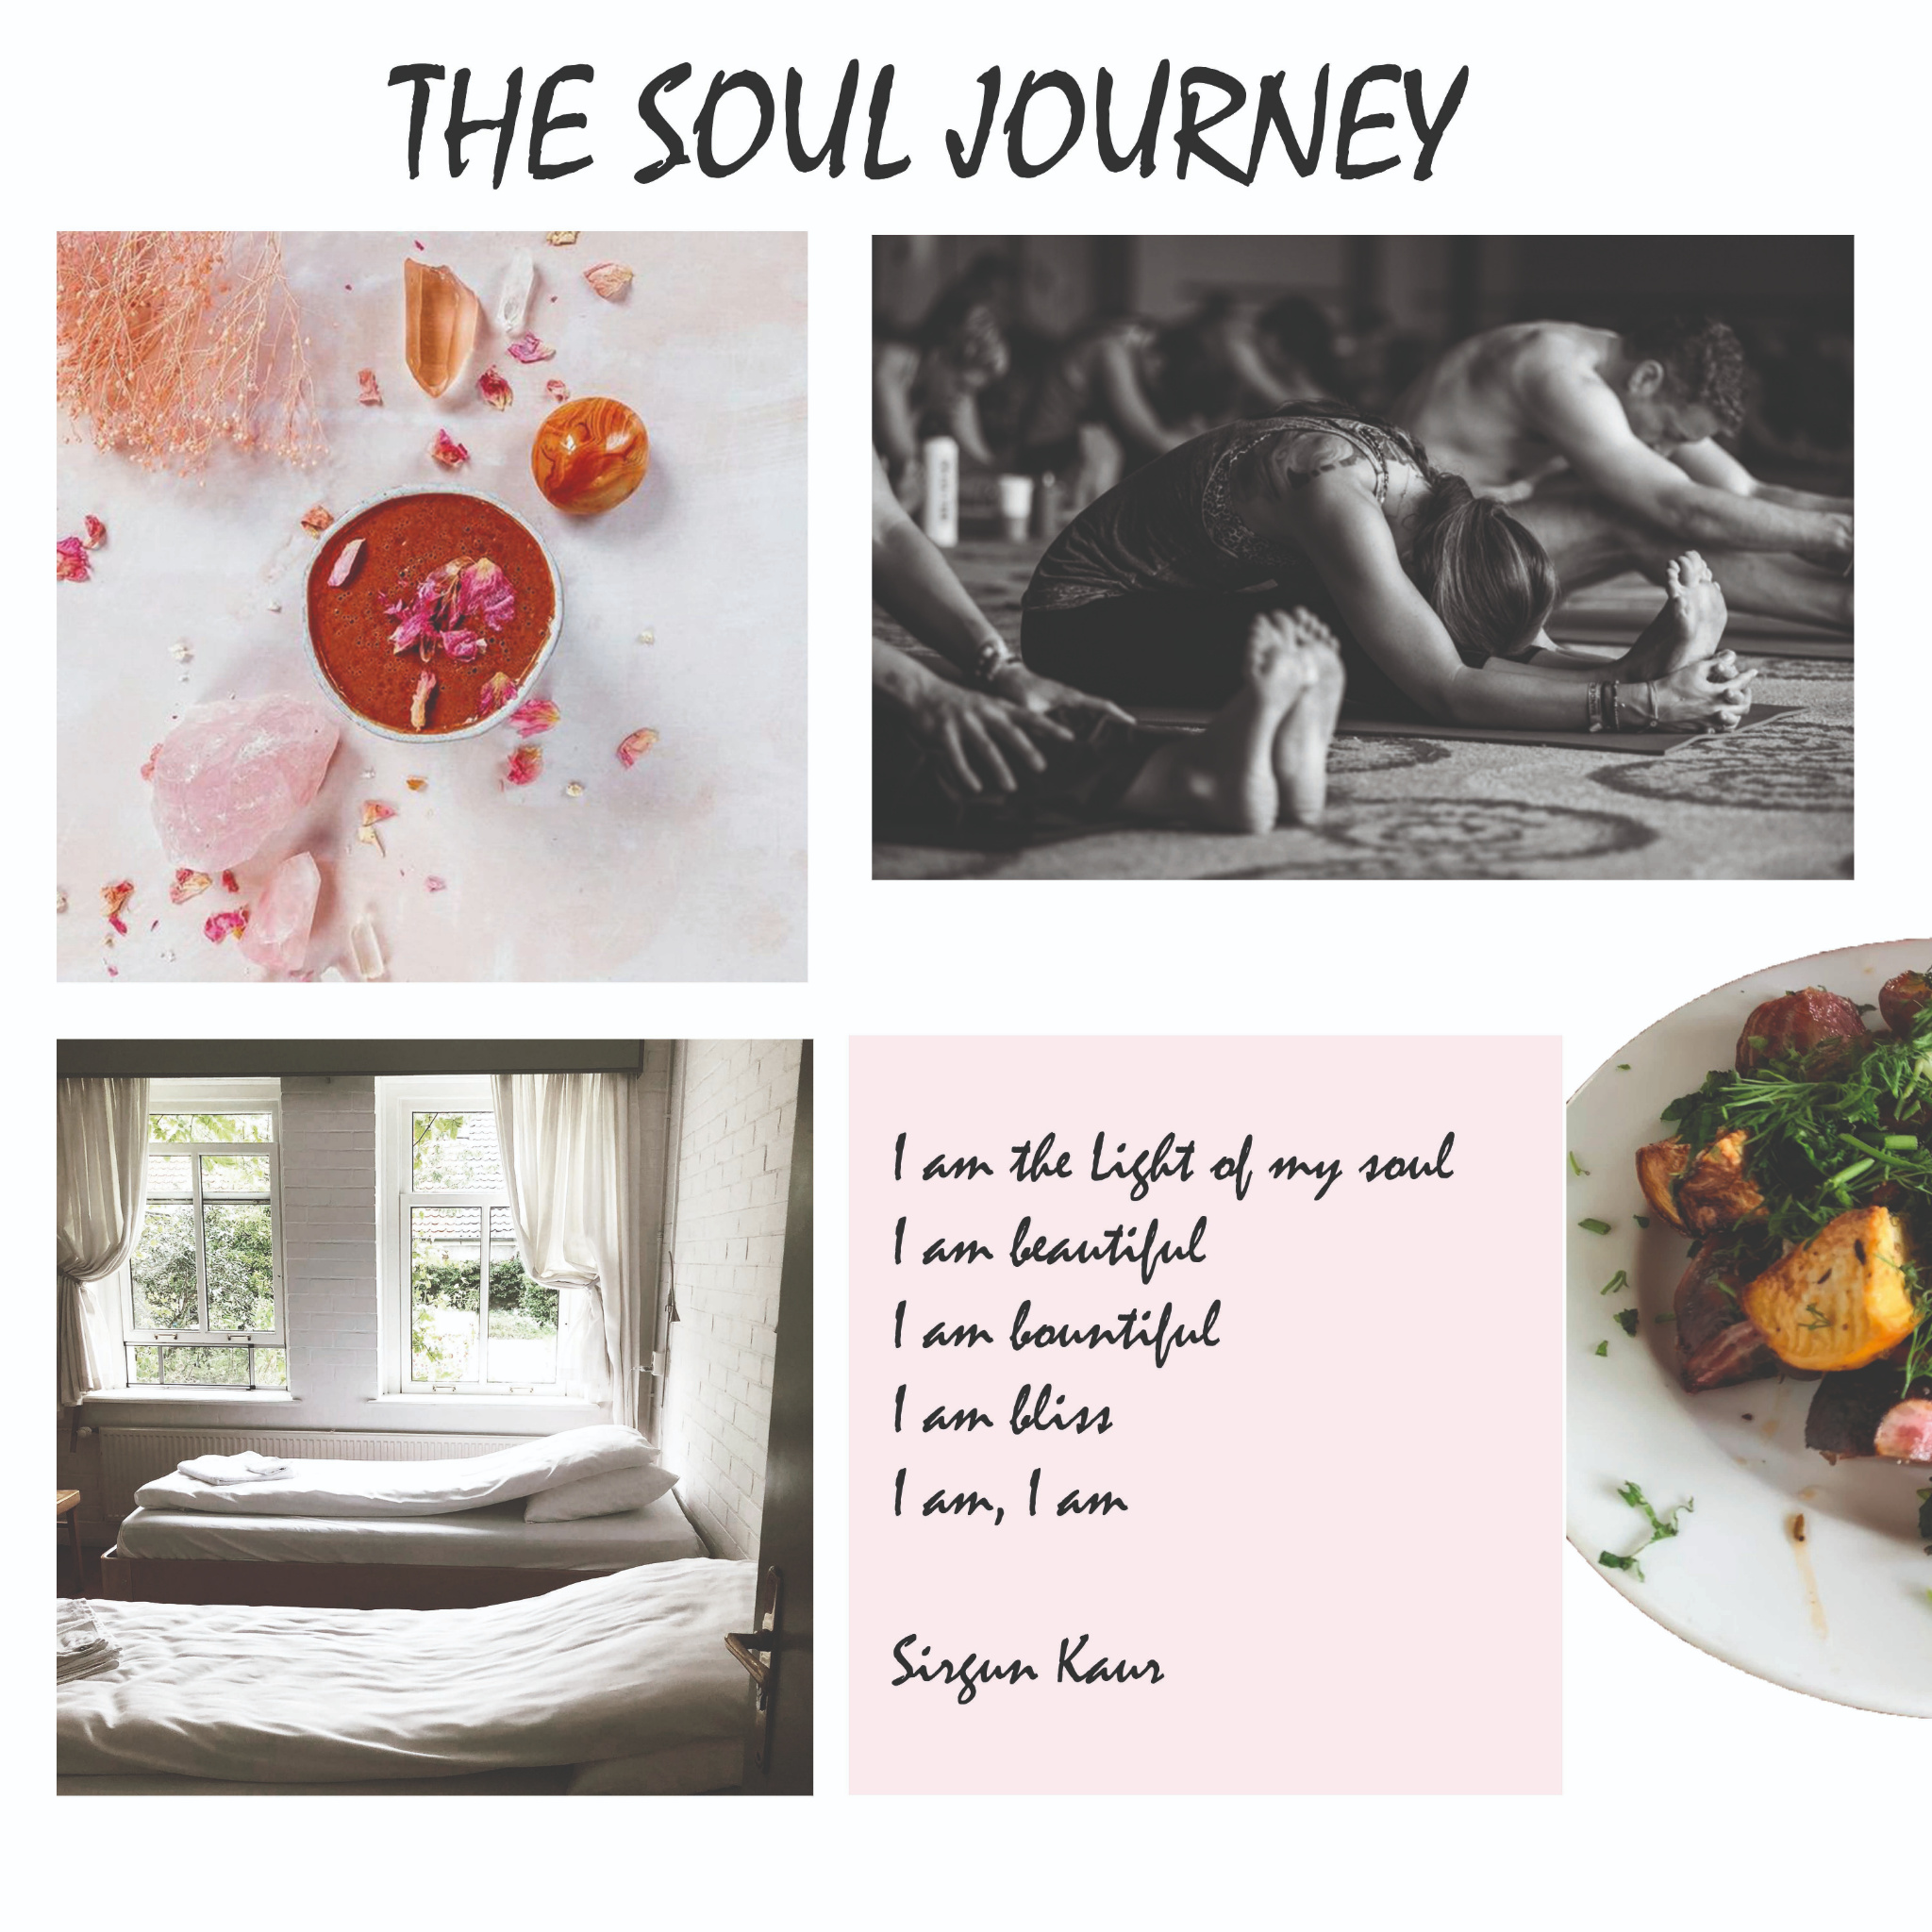 yoga retreat The Soul Journey Power Yoga Mindfulness Center